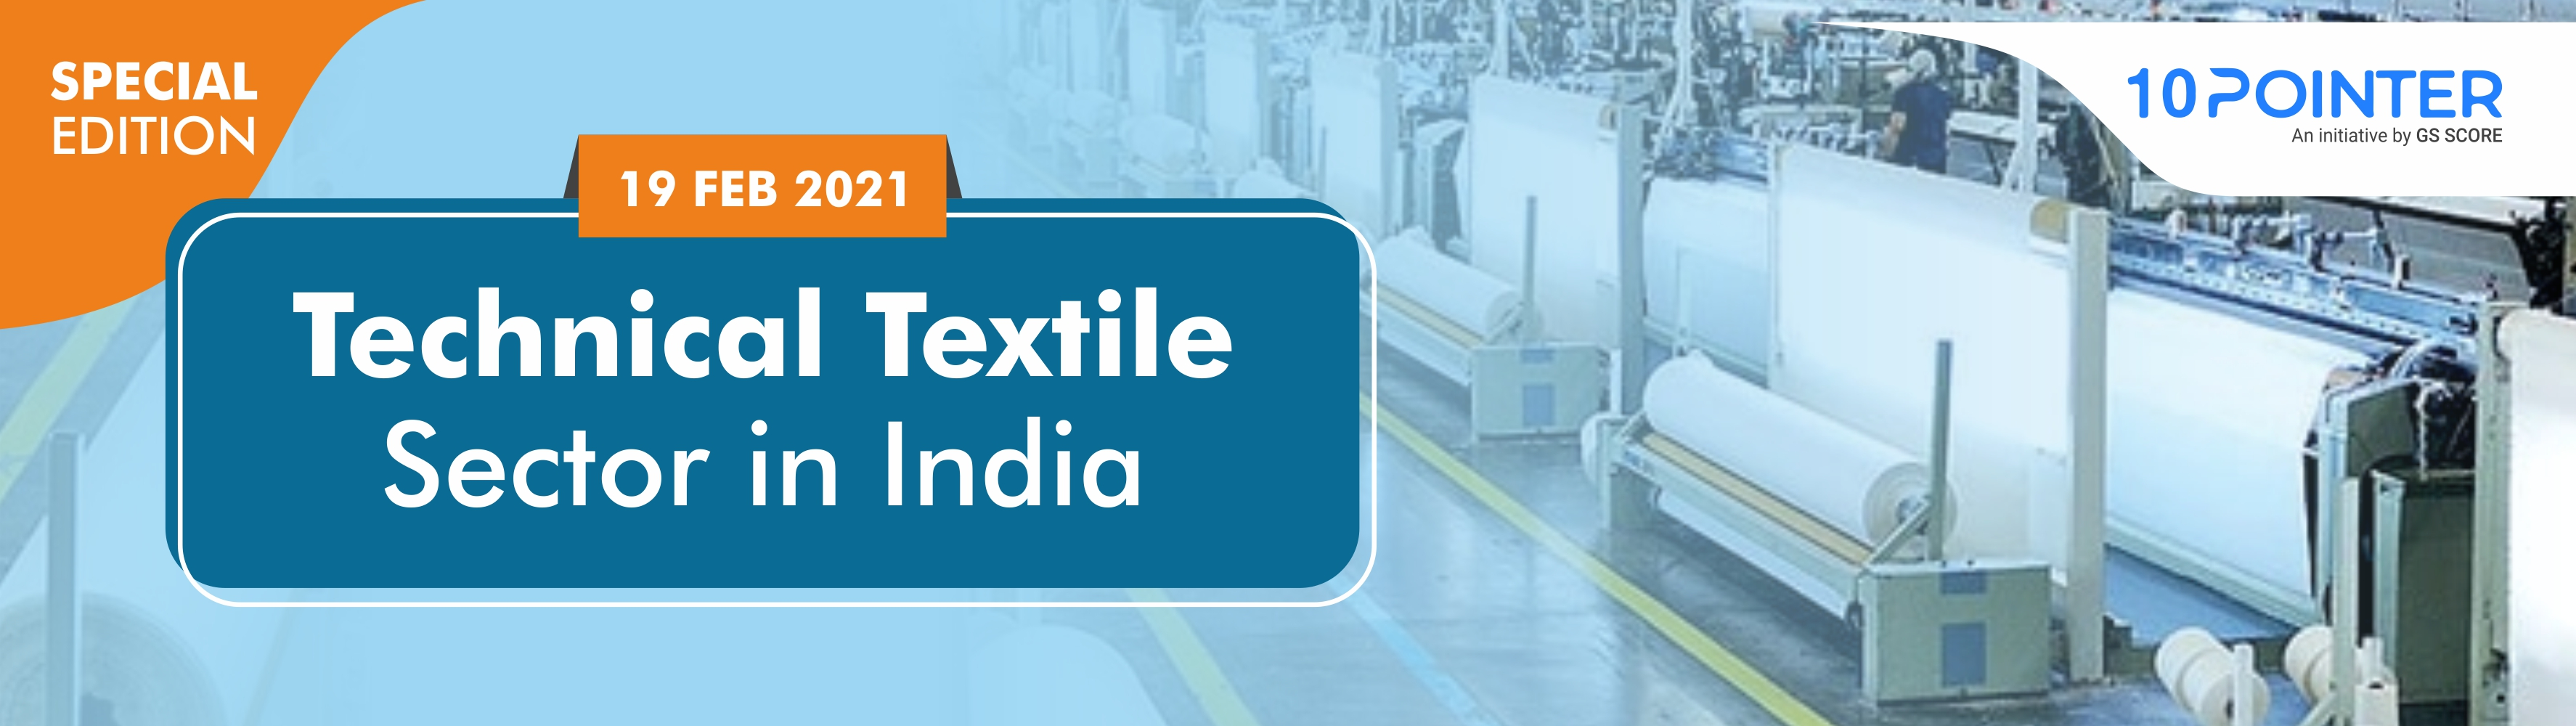 Technical Textile Sector in India: A boon amid pandemic